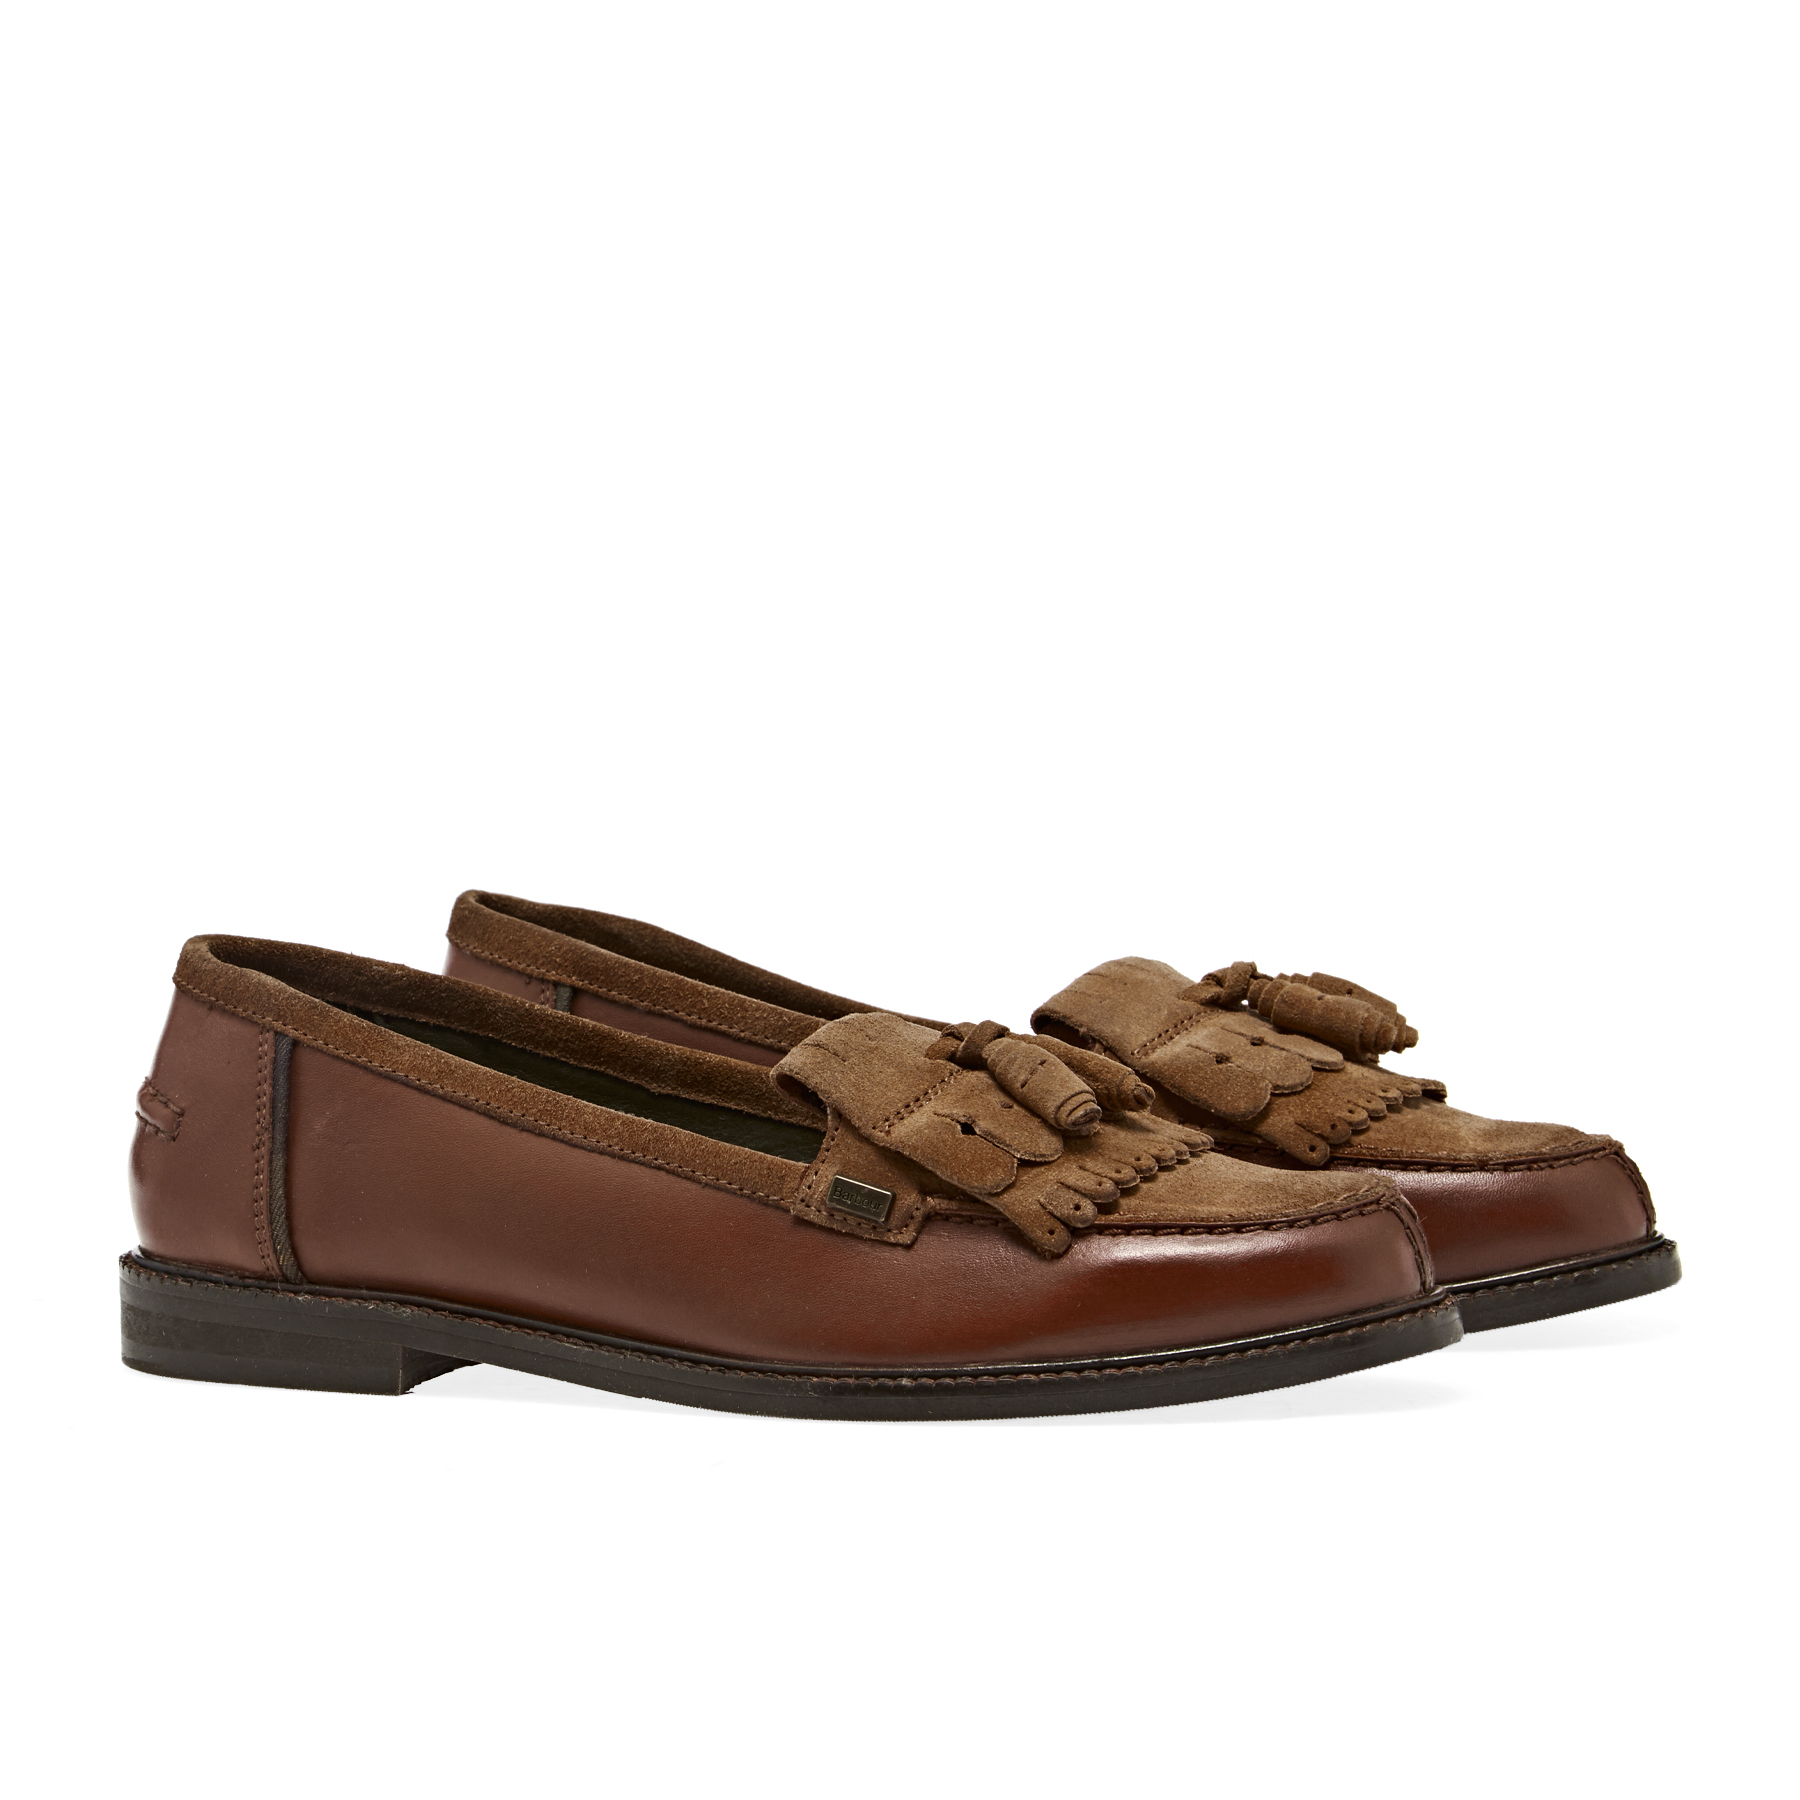 half off uk store hot sale online Barbour Olivia Tassel Loafers Dress Shoes - Tan | Country Attire UK